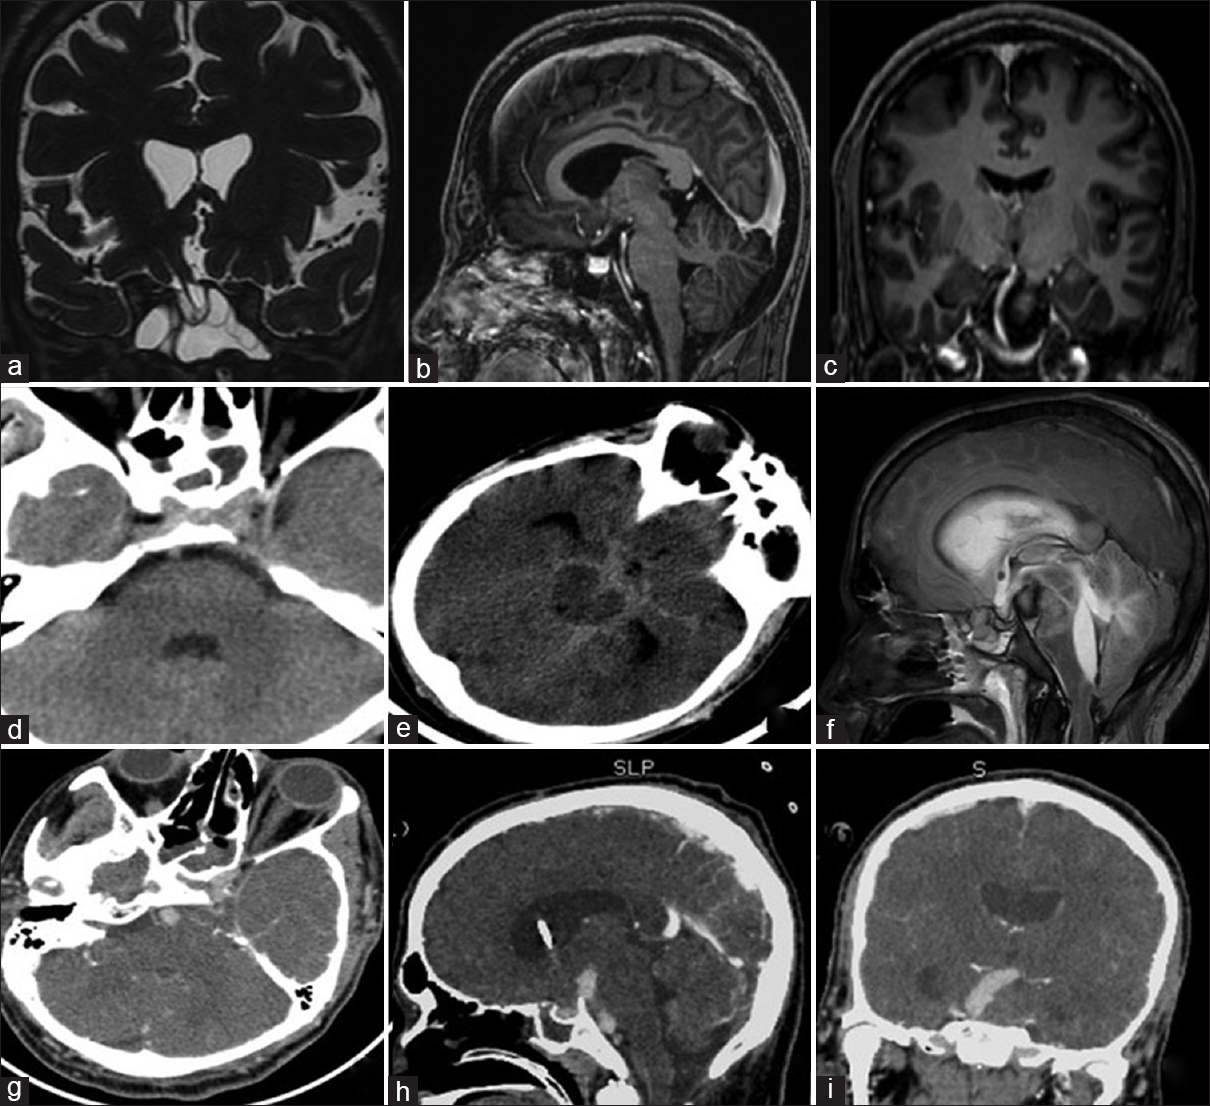 Figure 1: MRI brain done at the time of surgery for CSF rhinorrhea in 2015, showed a defect in the planum sphenoidale on the right side and an encephalomeningocele (a). Contrast MR sagittal and coronal images showed a normal basilar artery (b and c). A CT scan brain done after admission for meningitis in 2017, showed normal caliber of basilar artery (d). A CT brain performed on the day of ictus showed Fischer Grade 3 diffuse subarachnoid hemorrhage in basal cisterns (e). An MRI brain sagittal image (f) and CT angiogram with reconstructed coronal and sagittal images revealed the acute evolution of the basilar artery fusiform aneurysm within a period of 2 days(g-i)